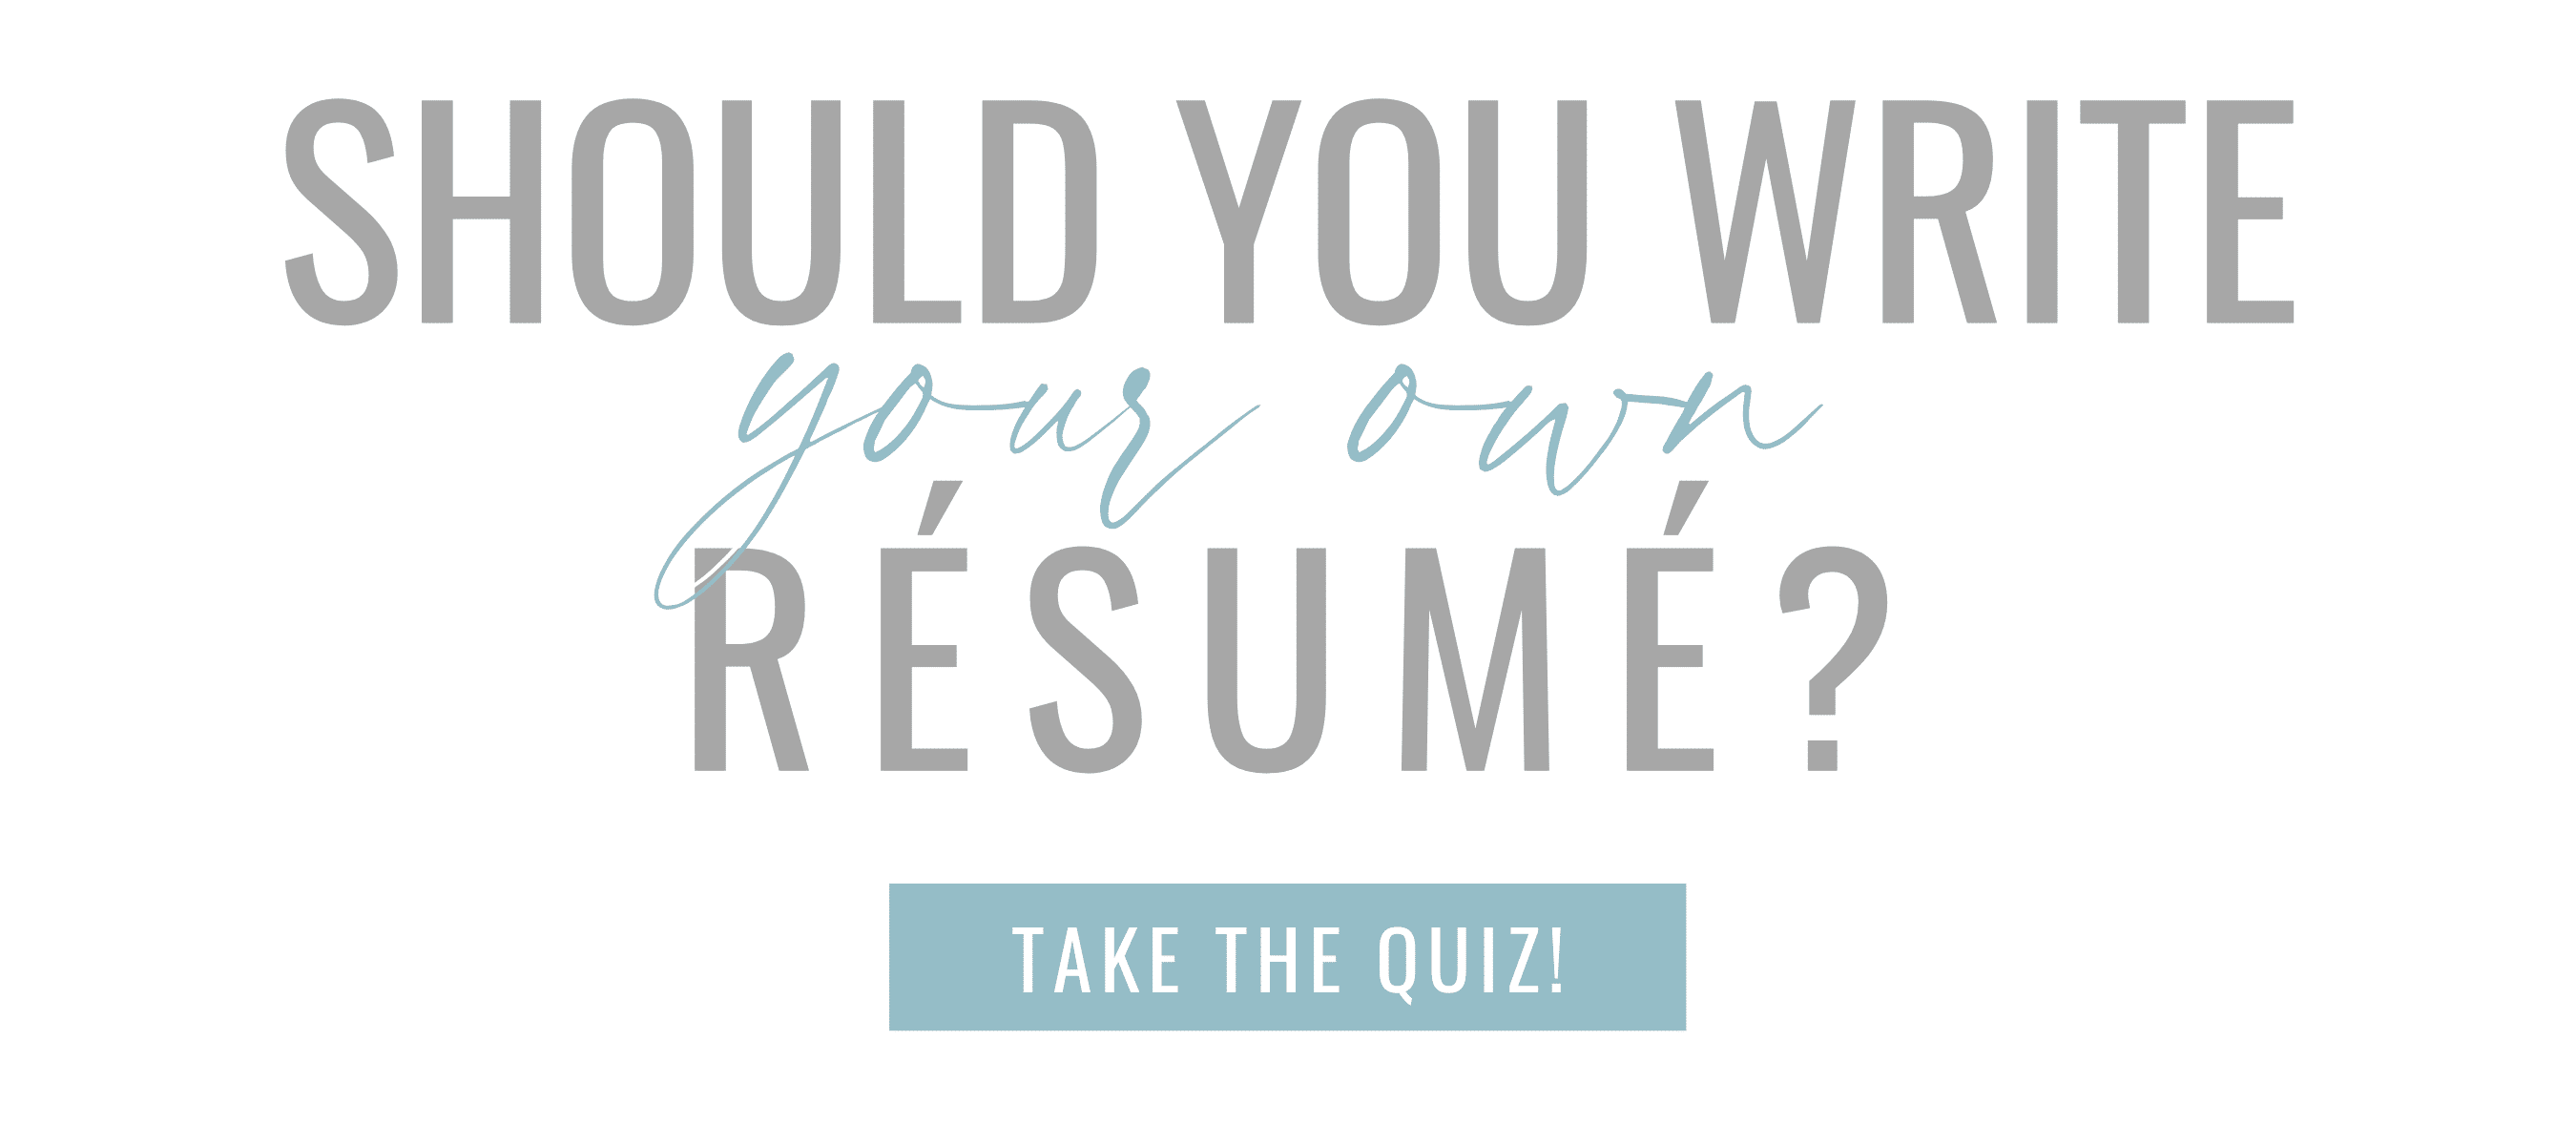 Should you write your own resume? Take the Quiz!